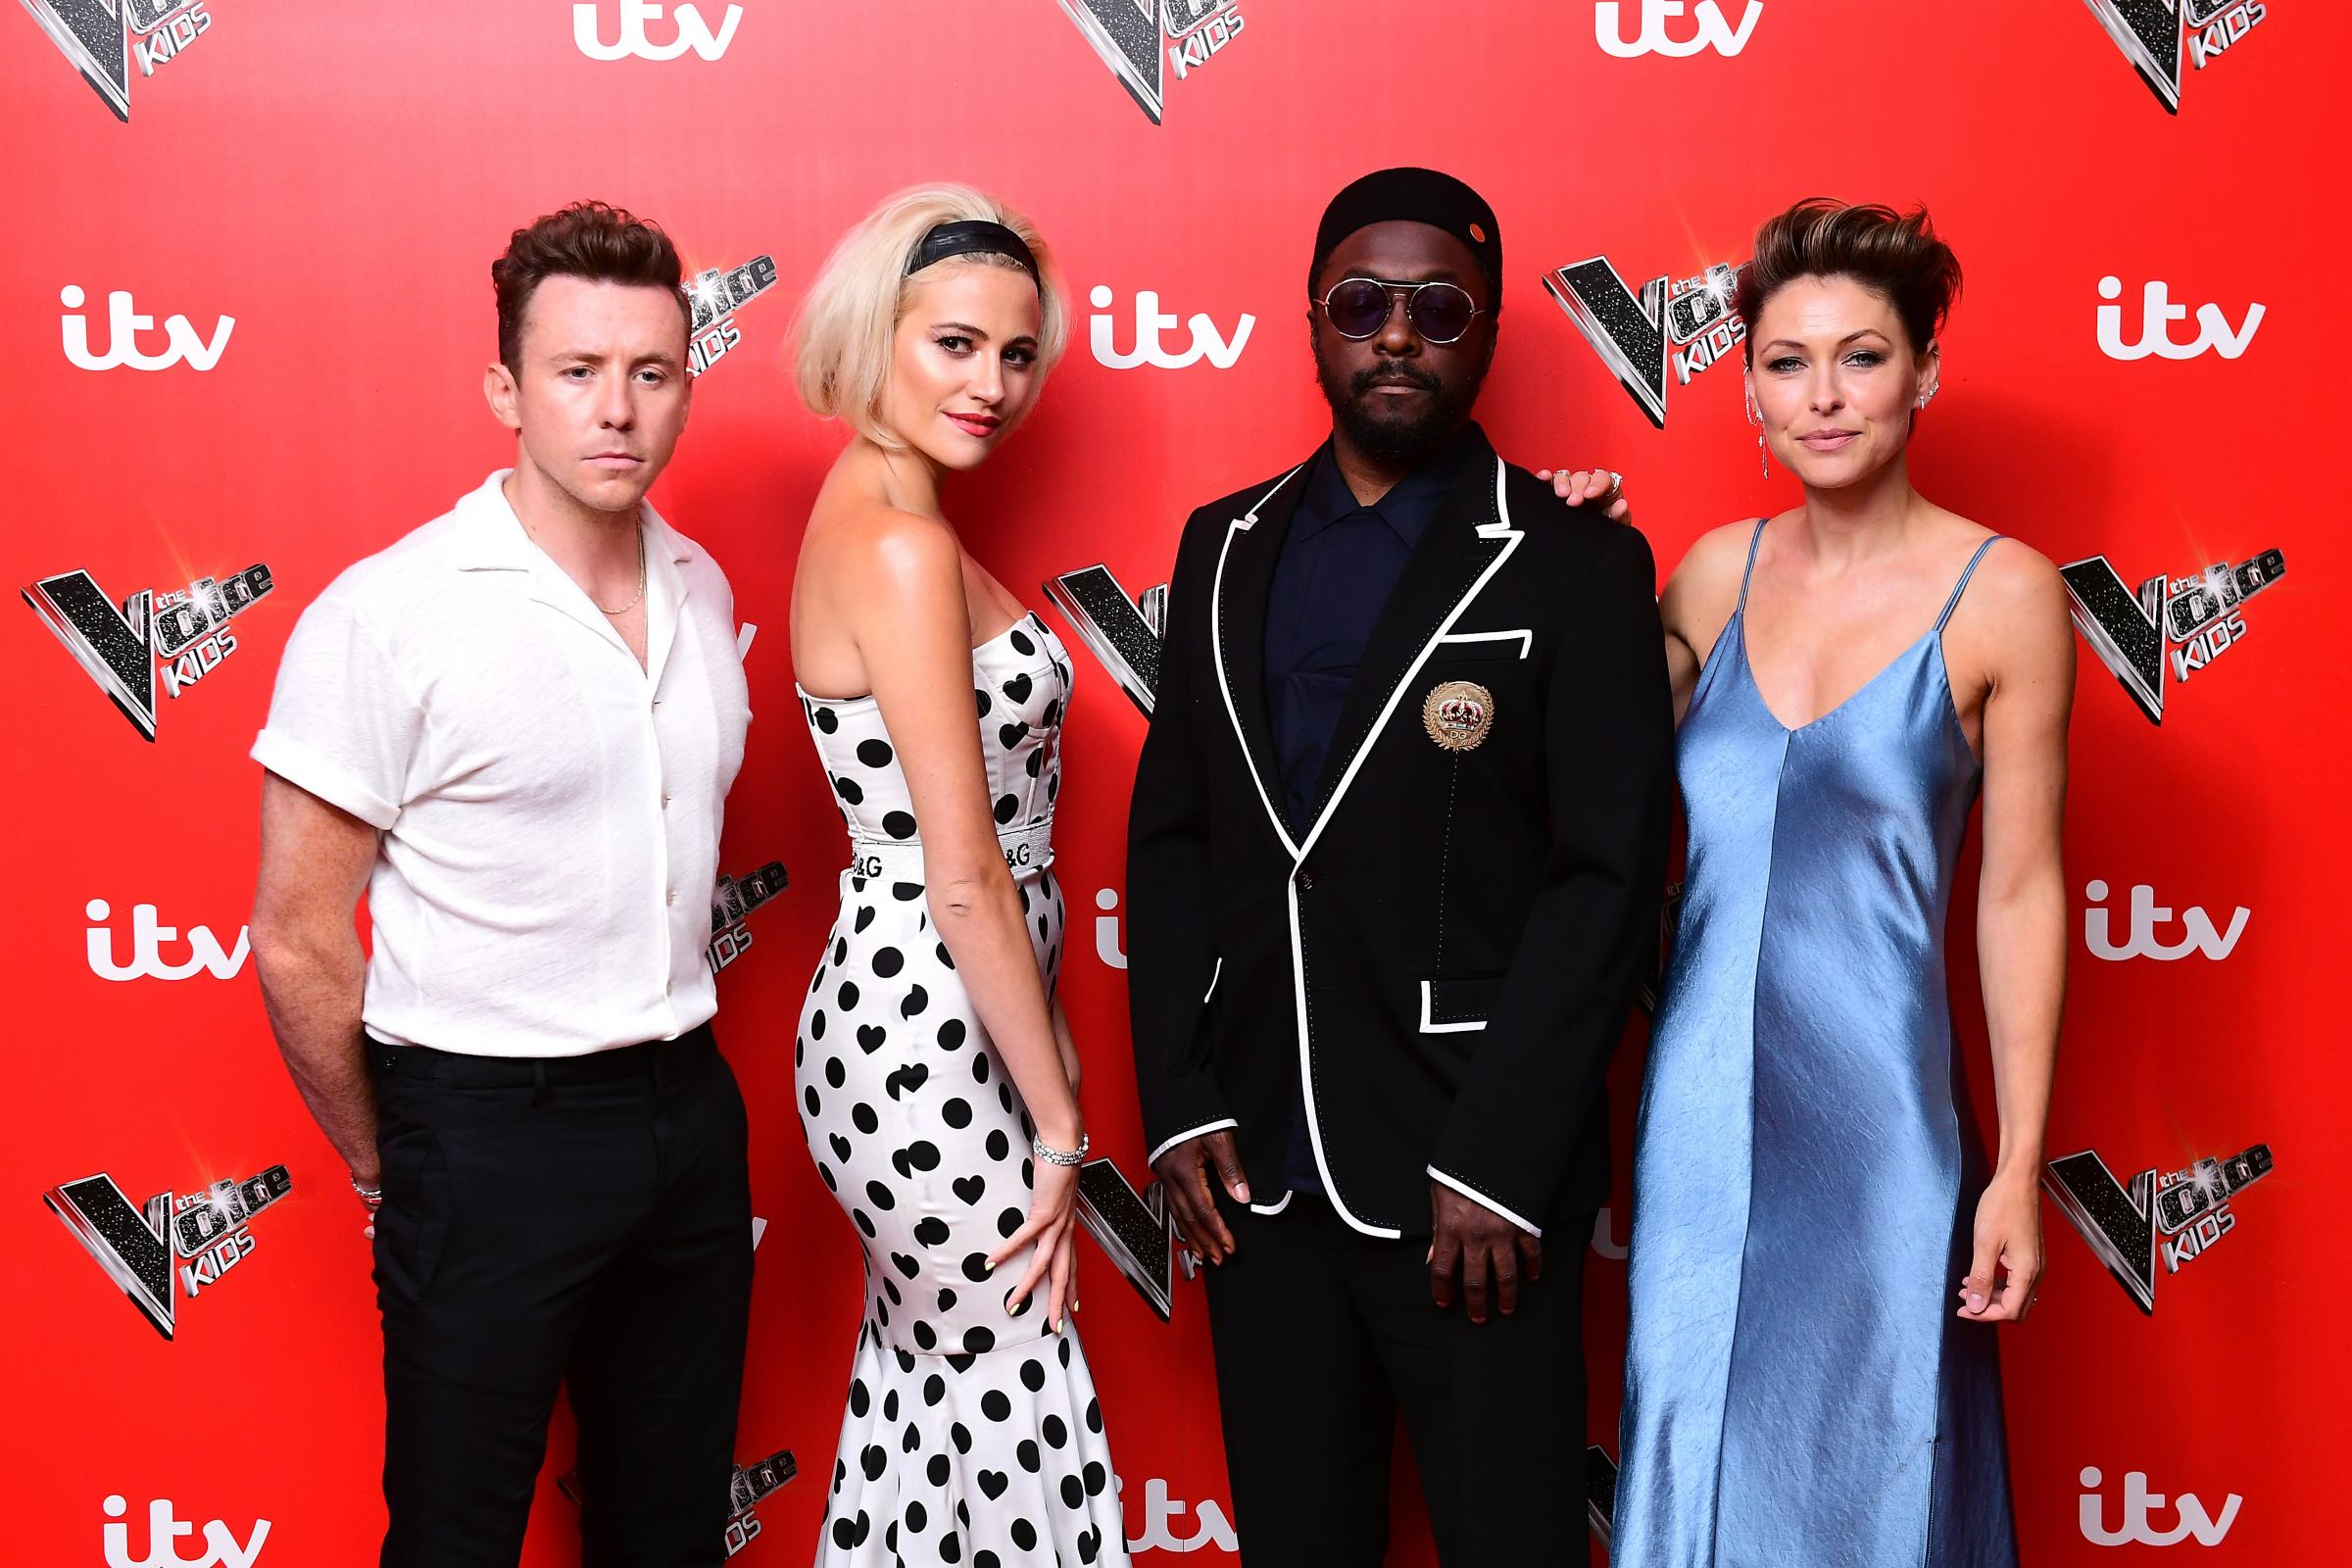 The presenting team of The Voice Kids